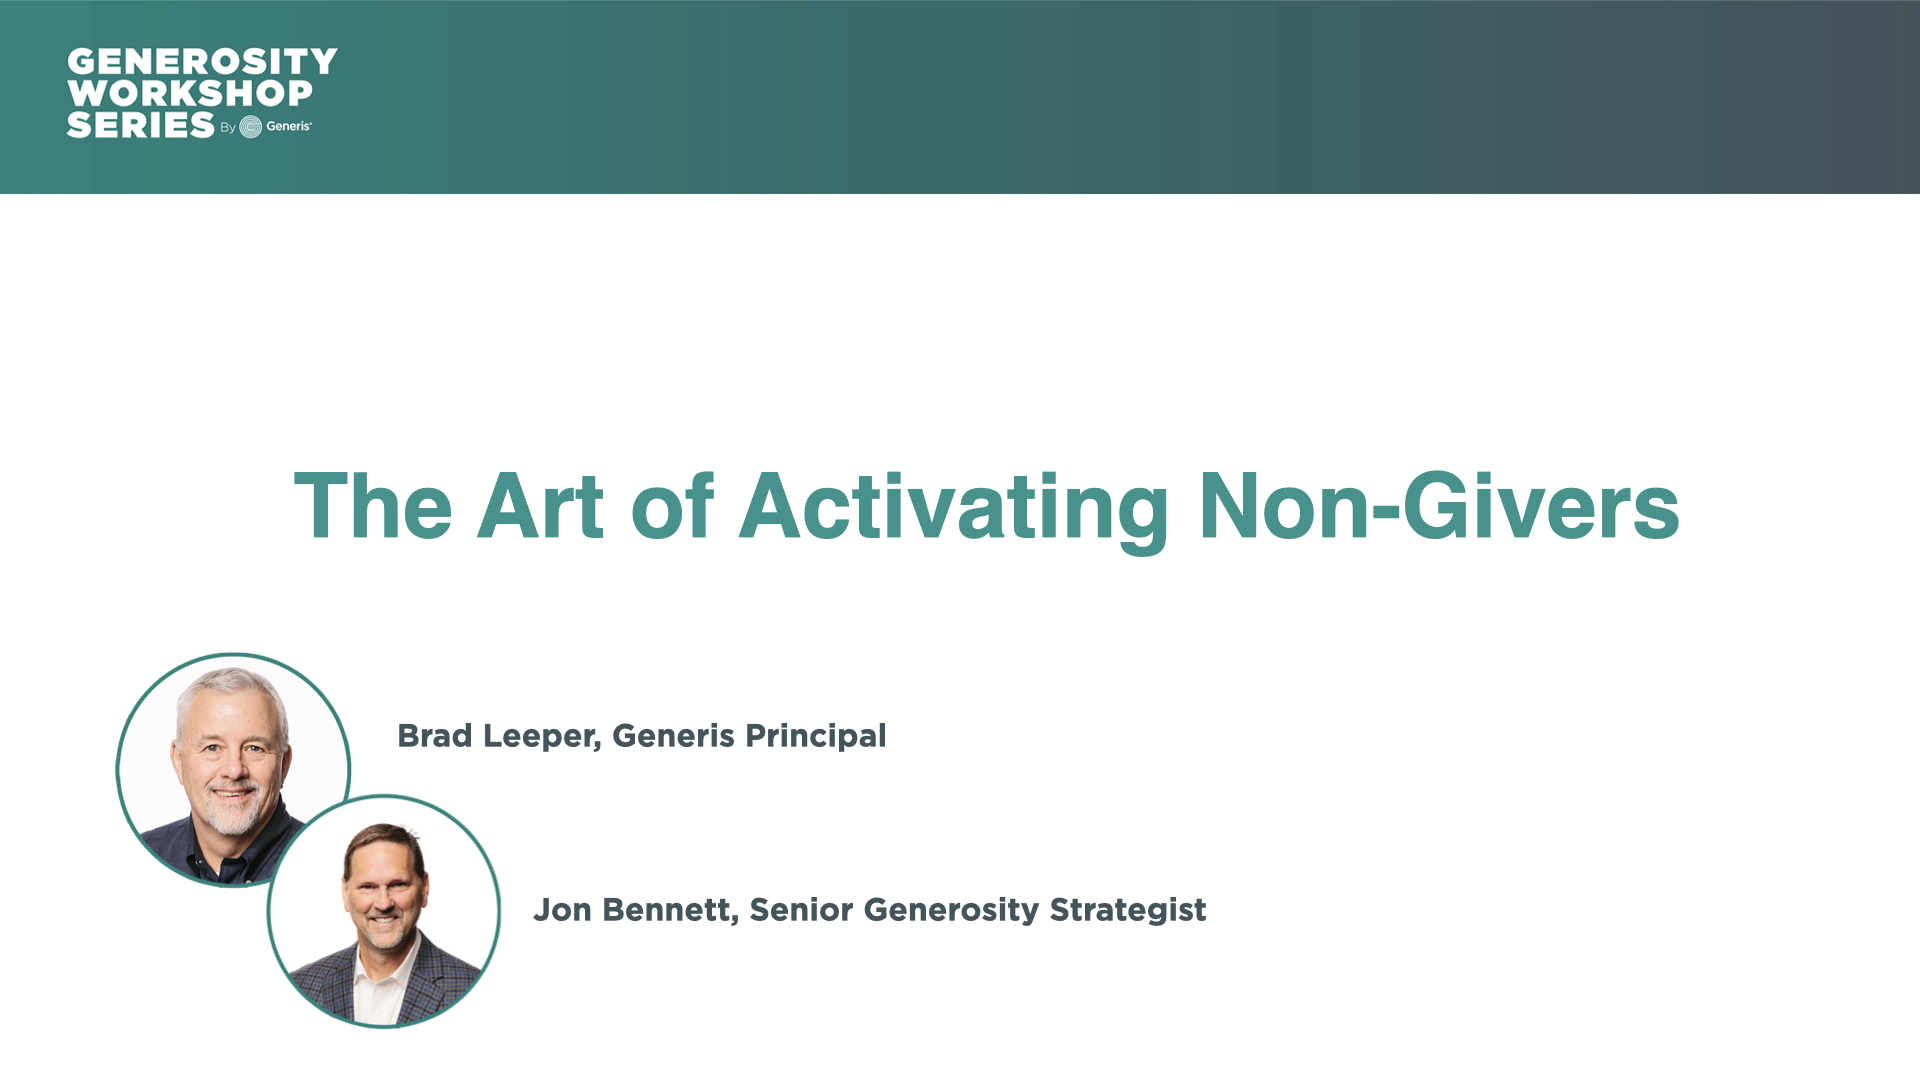 The Art of Activating Non-Givers